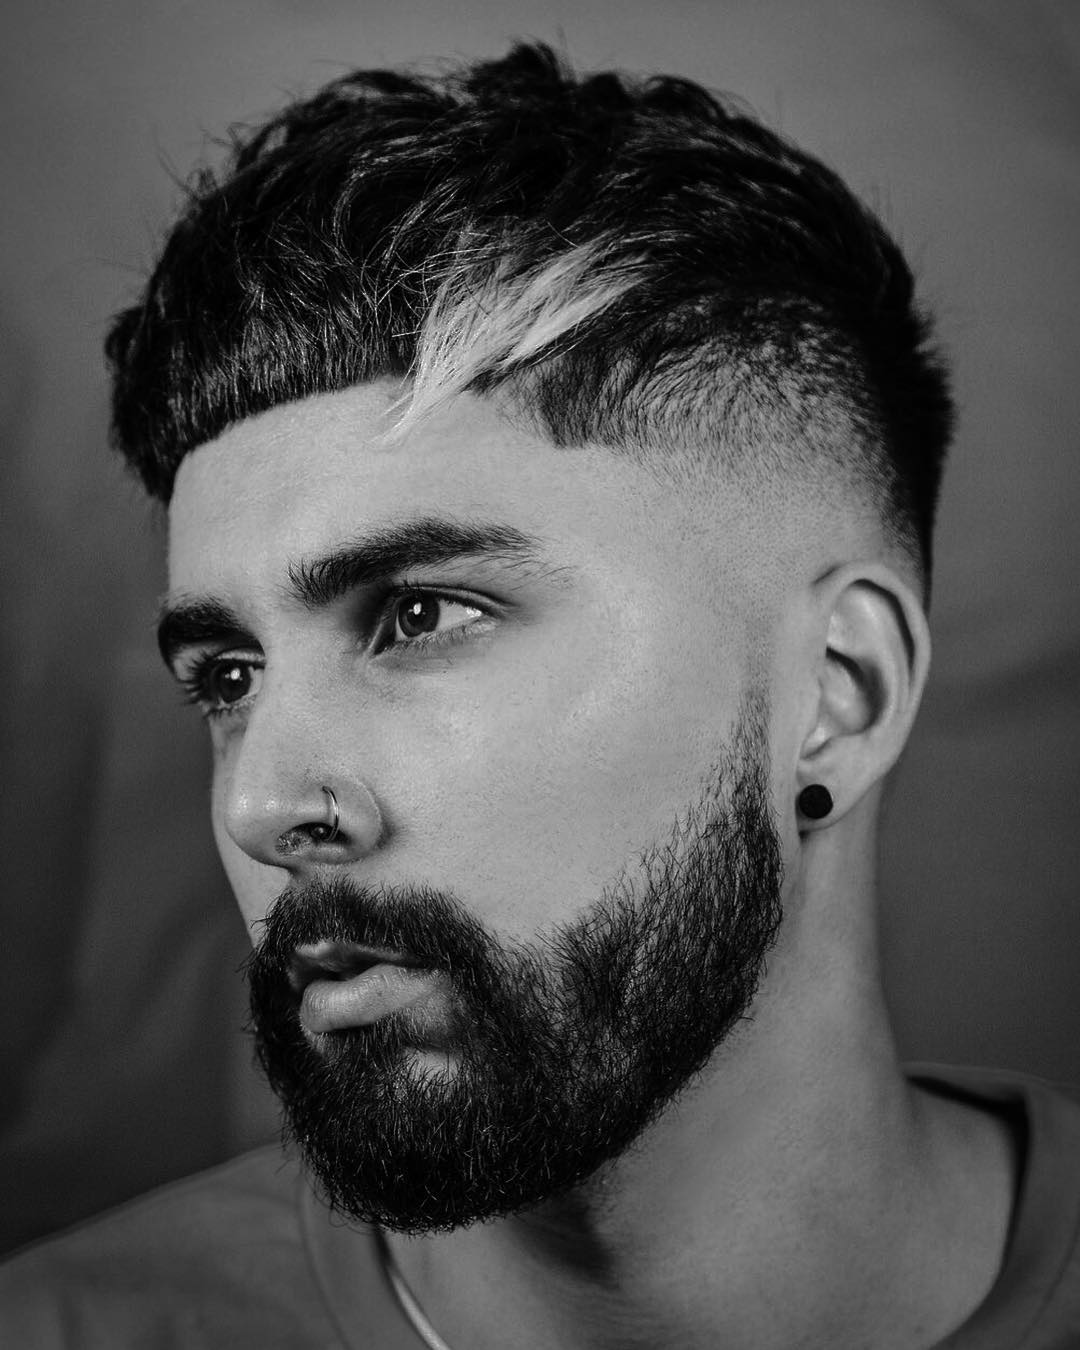 Spiky Haircut For Men 2018 Hairstyles Fashion And Clothing